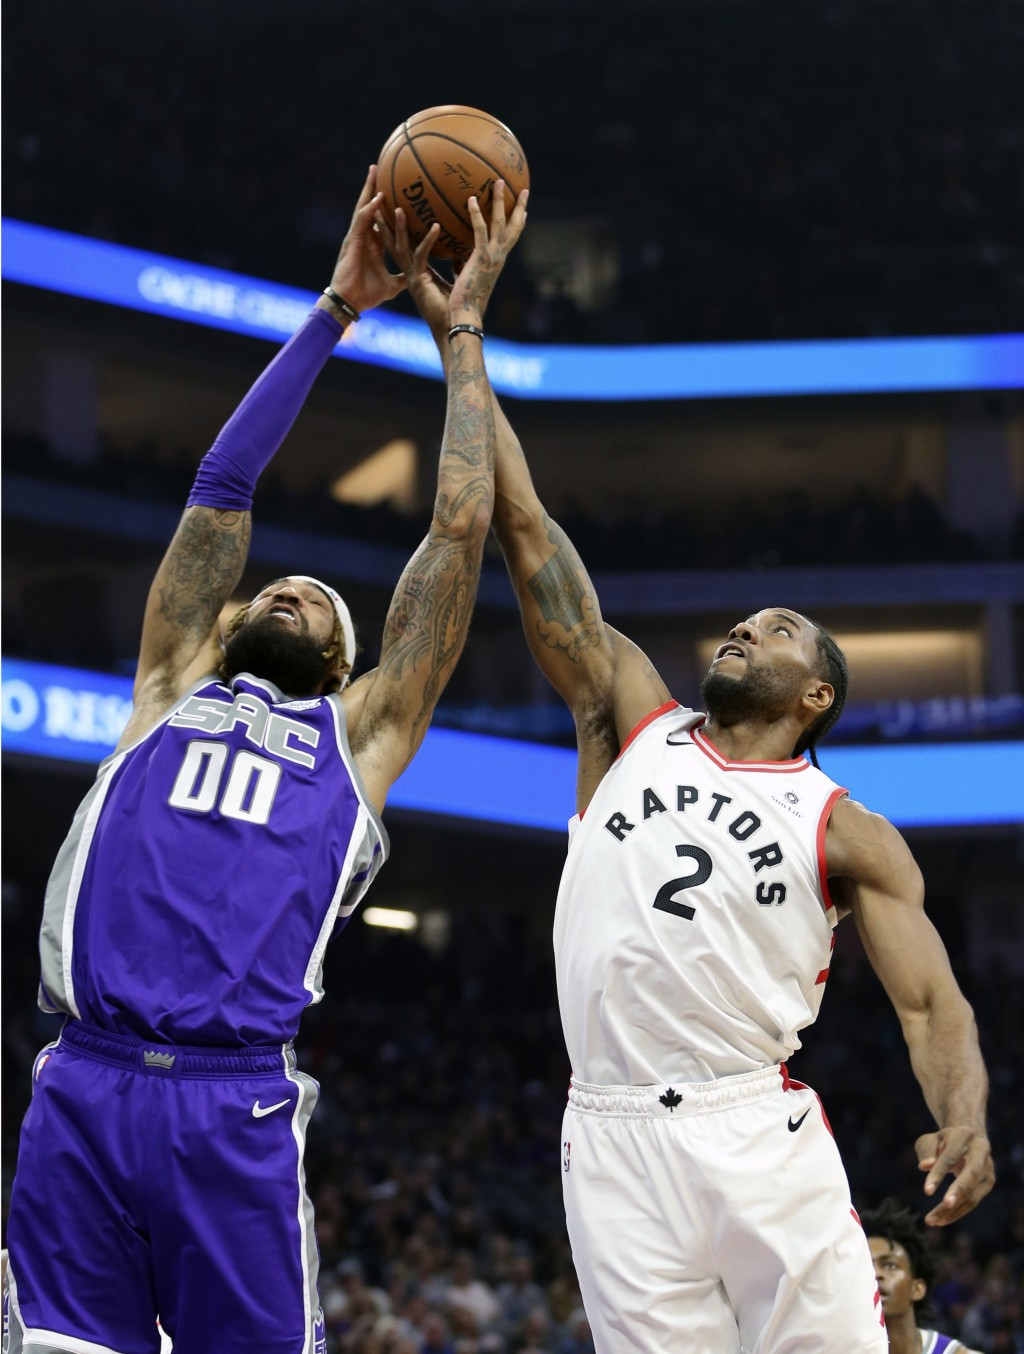 Sacramento Kings center Willie Cauley-Stein, left, and Toronto Raptors forward Kawhi Leonard, right, go for the rebound during the first quarter of an